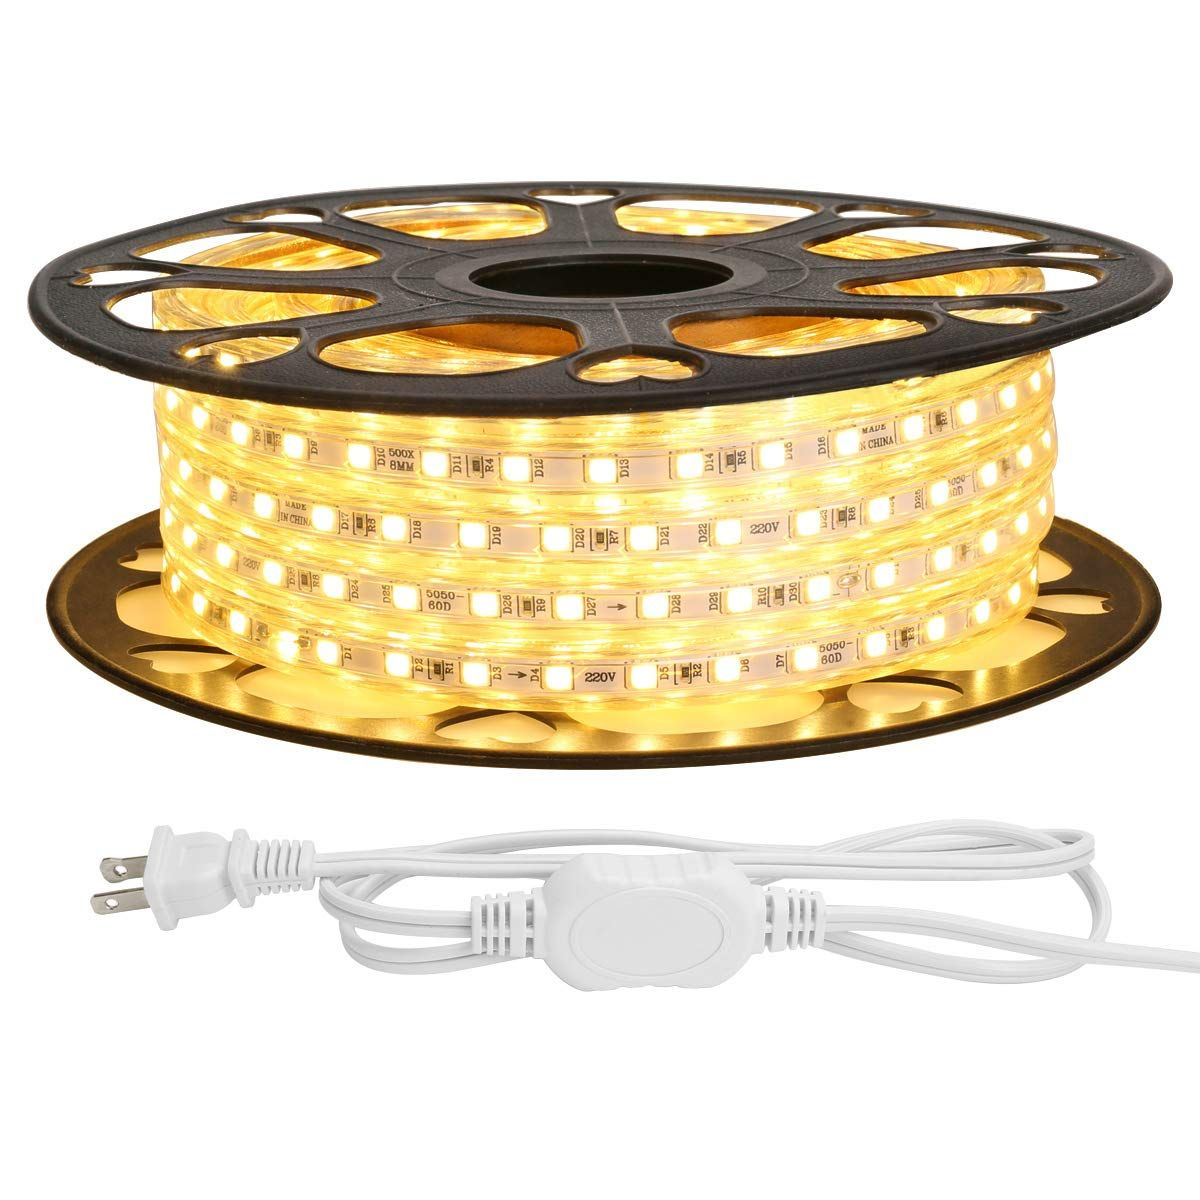 Le 49ft Led Strip Lights 120 Volt 115w 900 Smd 5050 Leds Waterproof Flexible Warm White Etl L Led Rope Lights Led Strip Lighting Strip Lighting